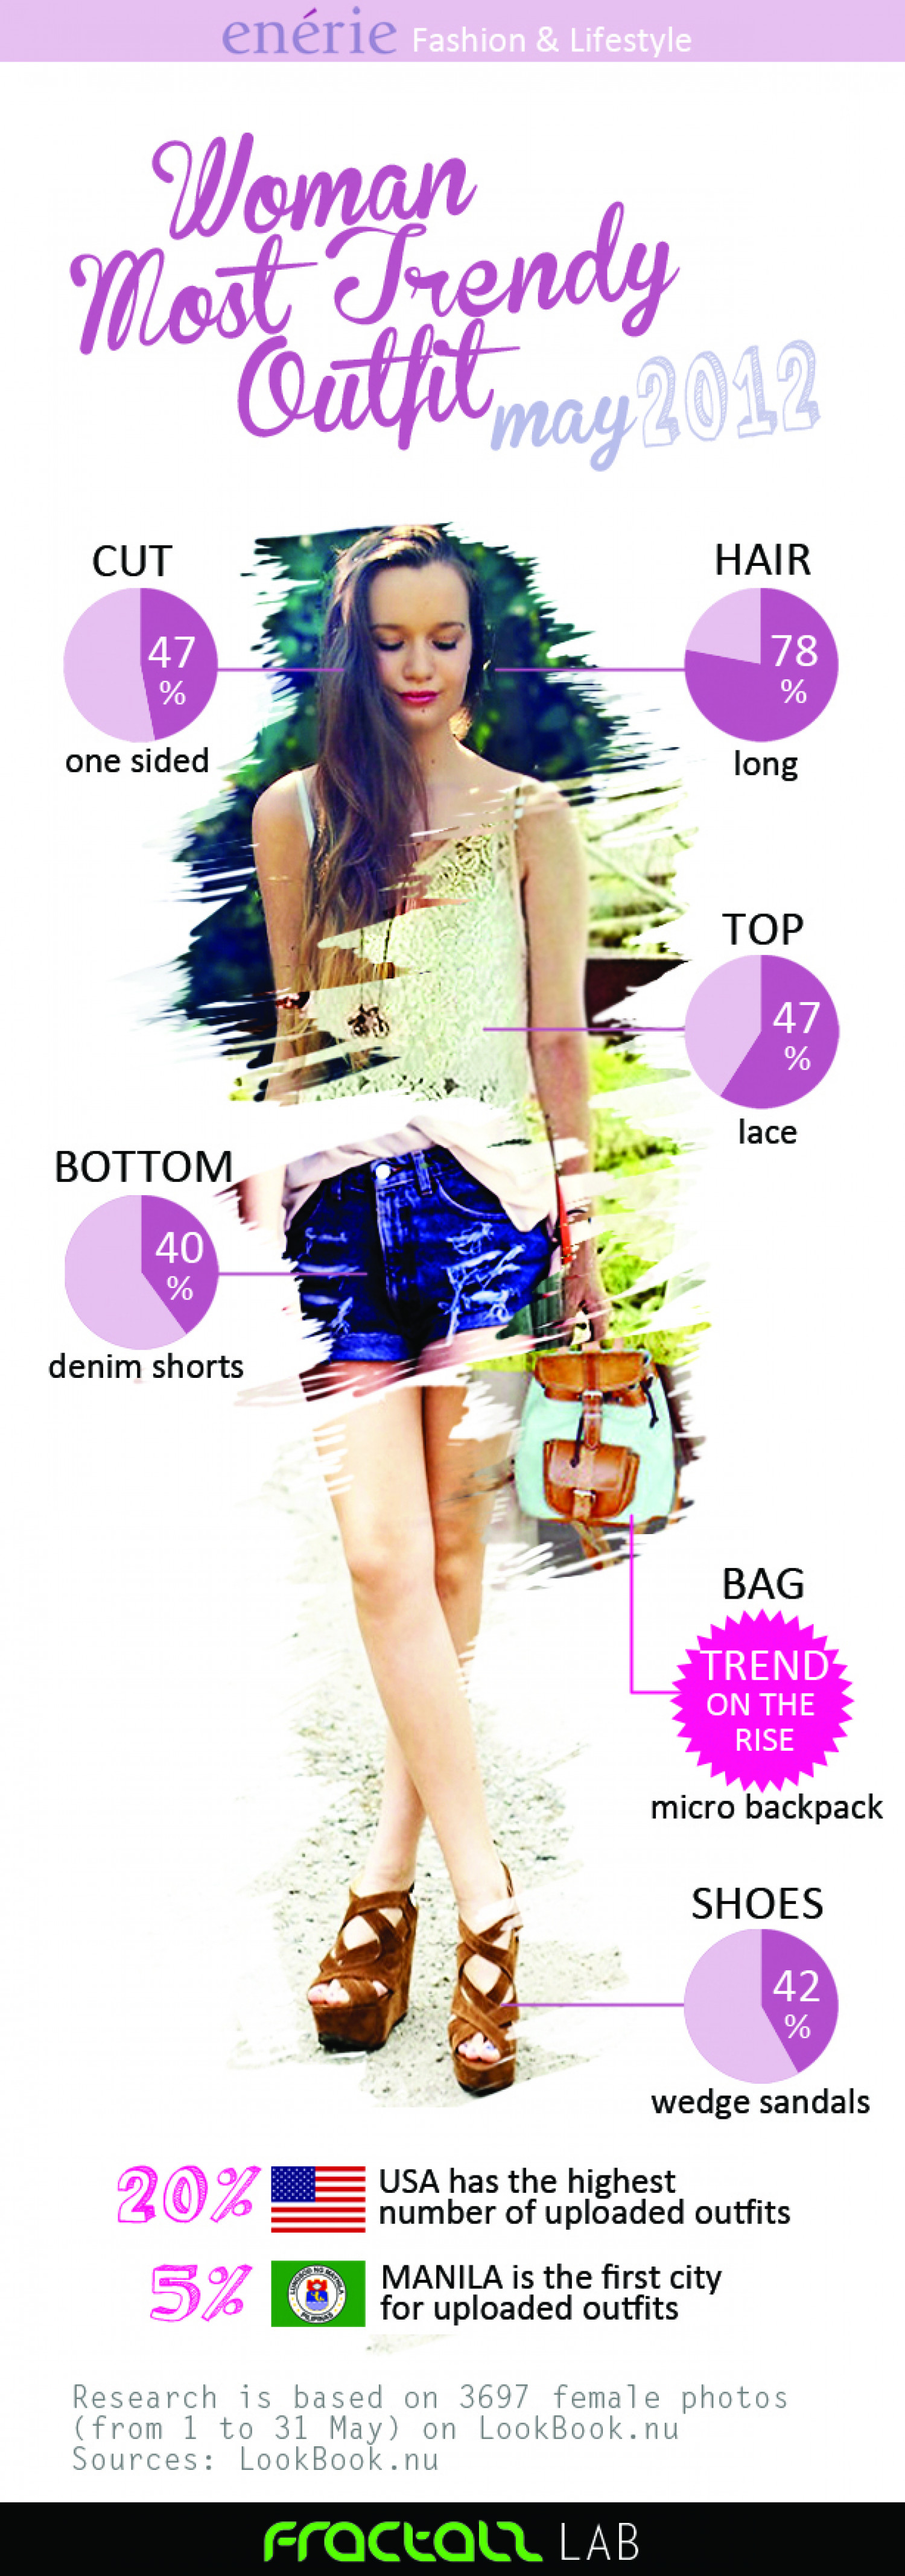 Woman Most Trendy Outfit june 2012 Infographic